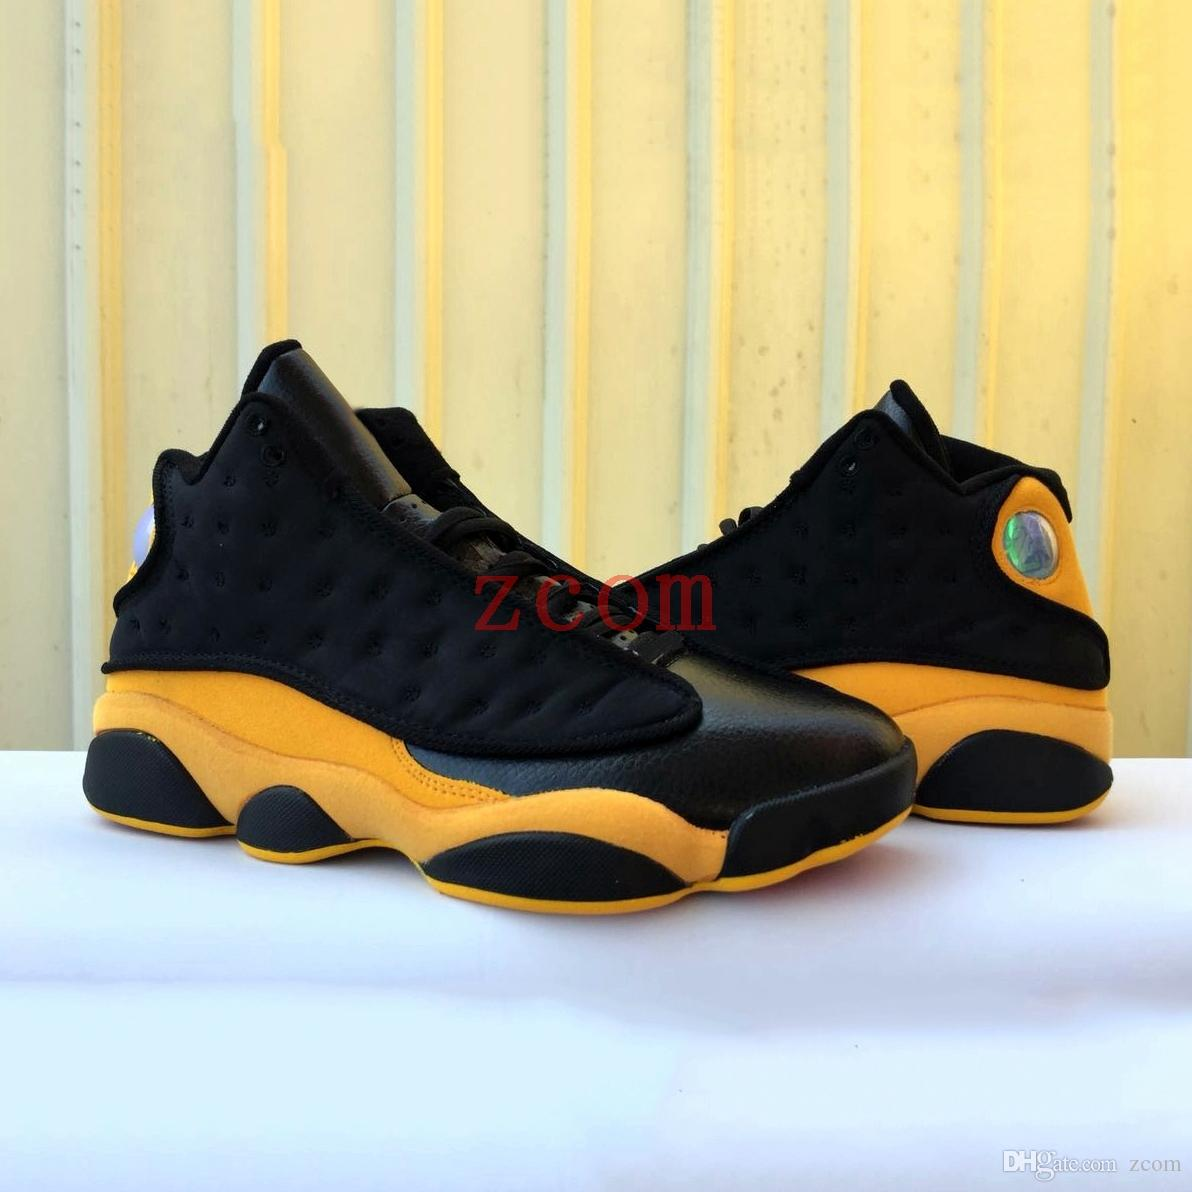 17bc8a81c003fe Hot Sale 13 Melo Class Of 2003 Mens Basketball Shoes 13s Shoes Yellow Black  Outdoor Casual Athletic Sports Sneakers Size 41 47 Men Sneakers Sneakers Men  ...